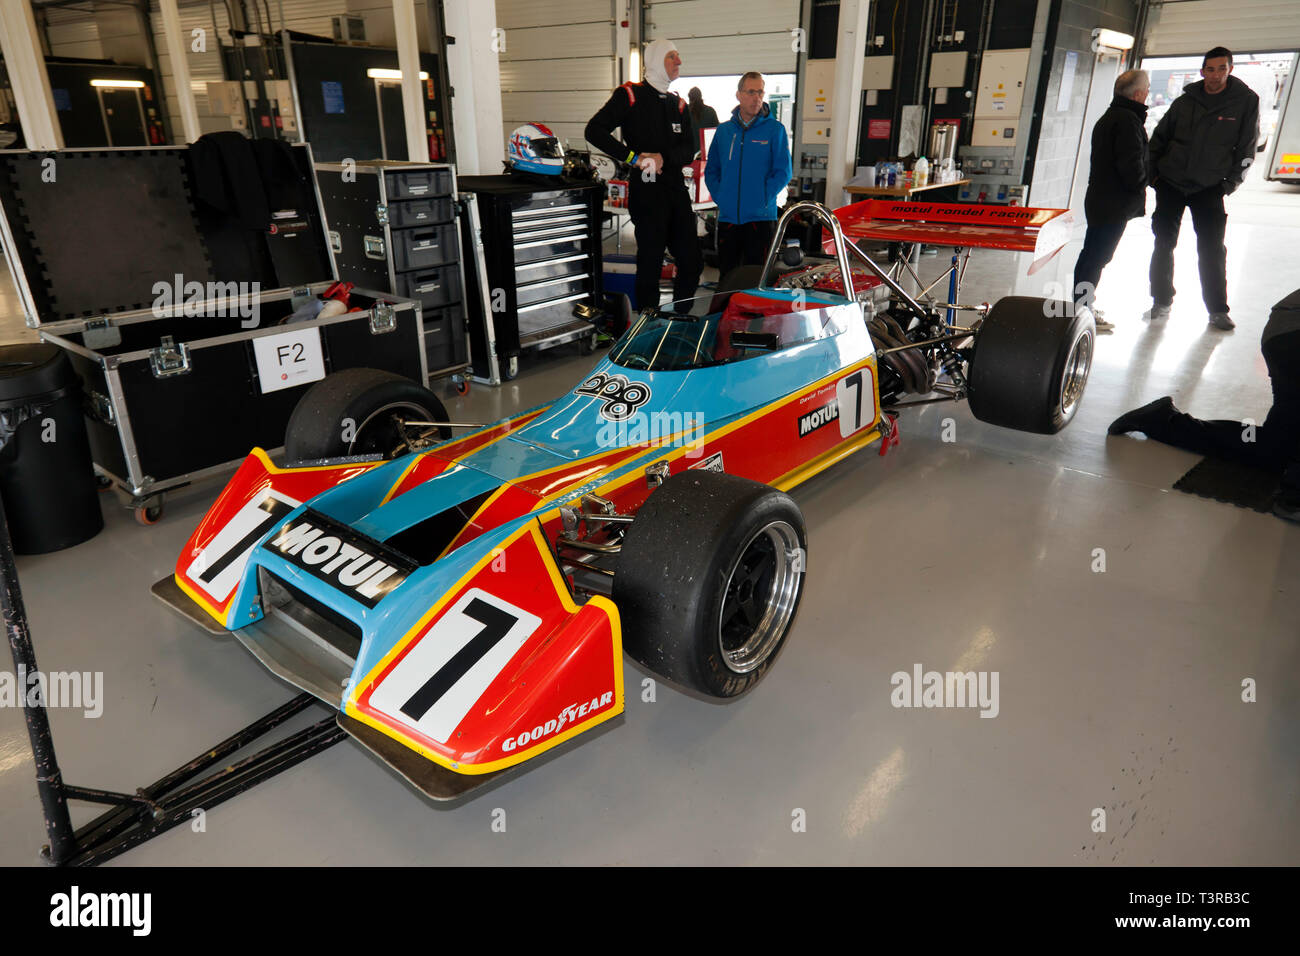 A Motul M1 Cosworth F2 car previously driven by Henri Pescarolo, in the International Pit Garage during the 2019 Silverstone Classic  Test Day - Stock Image